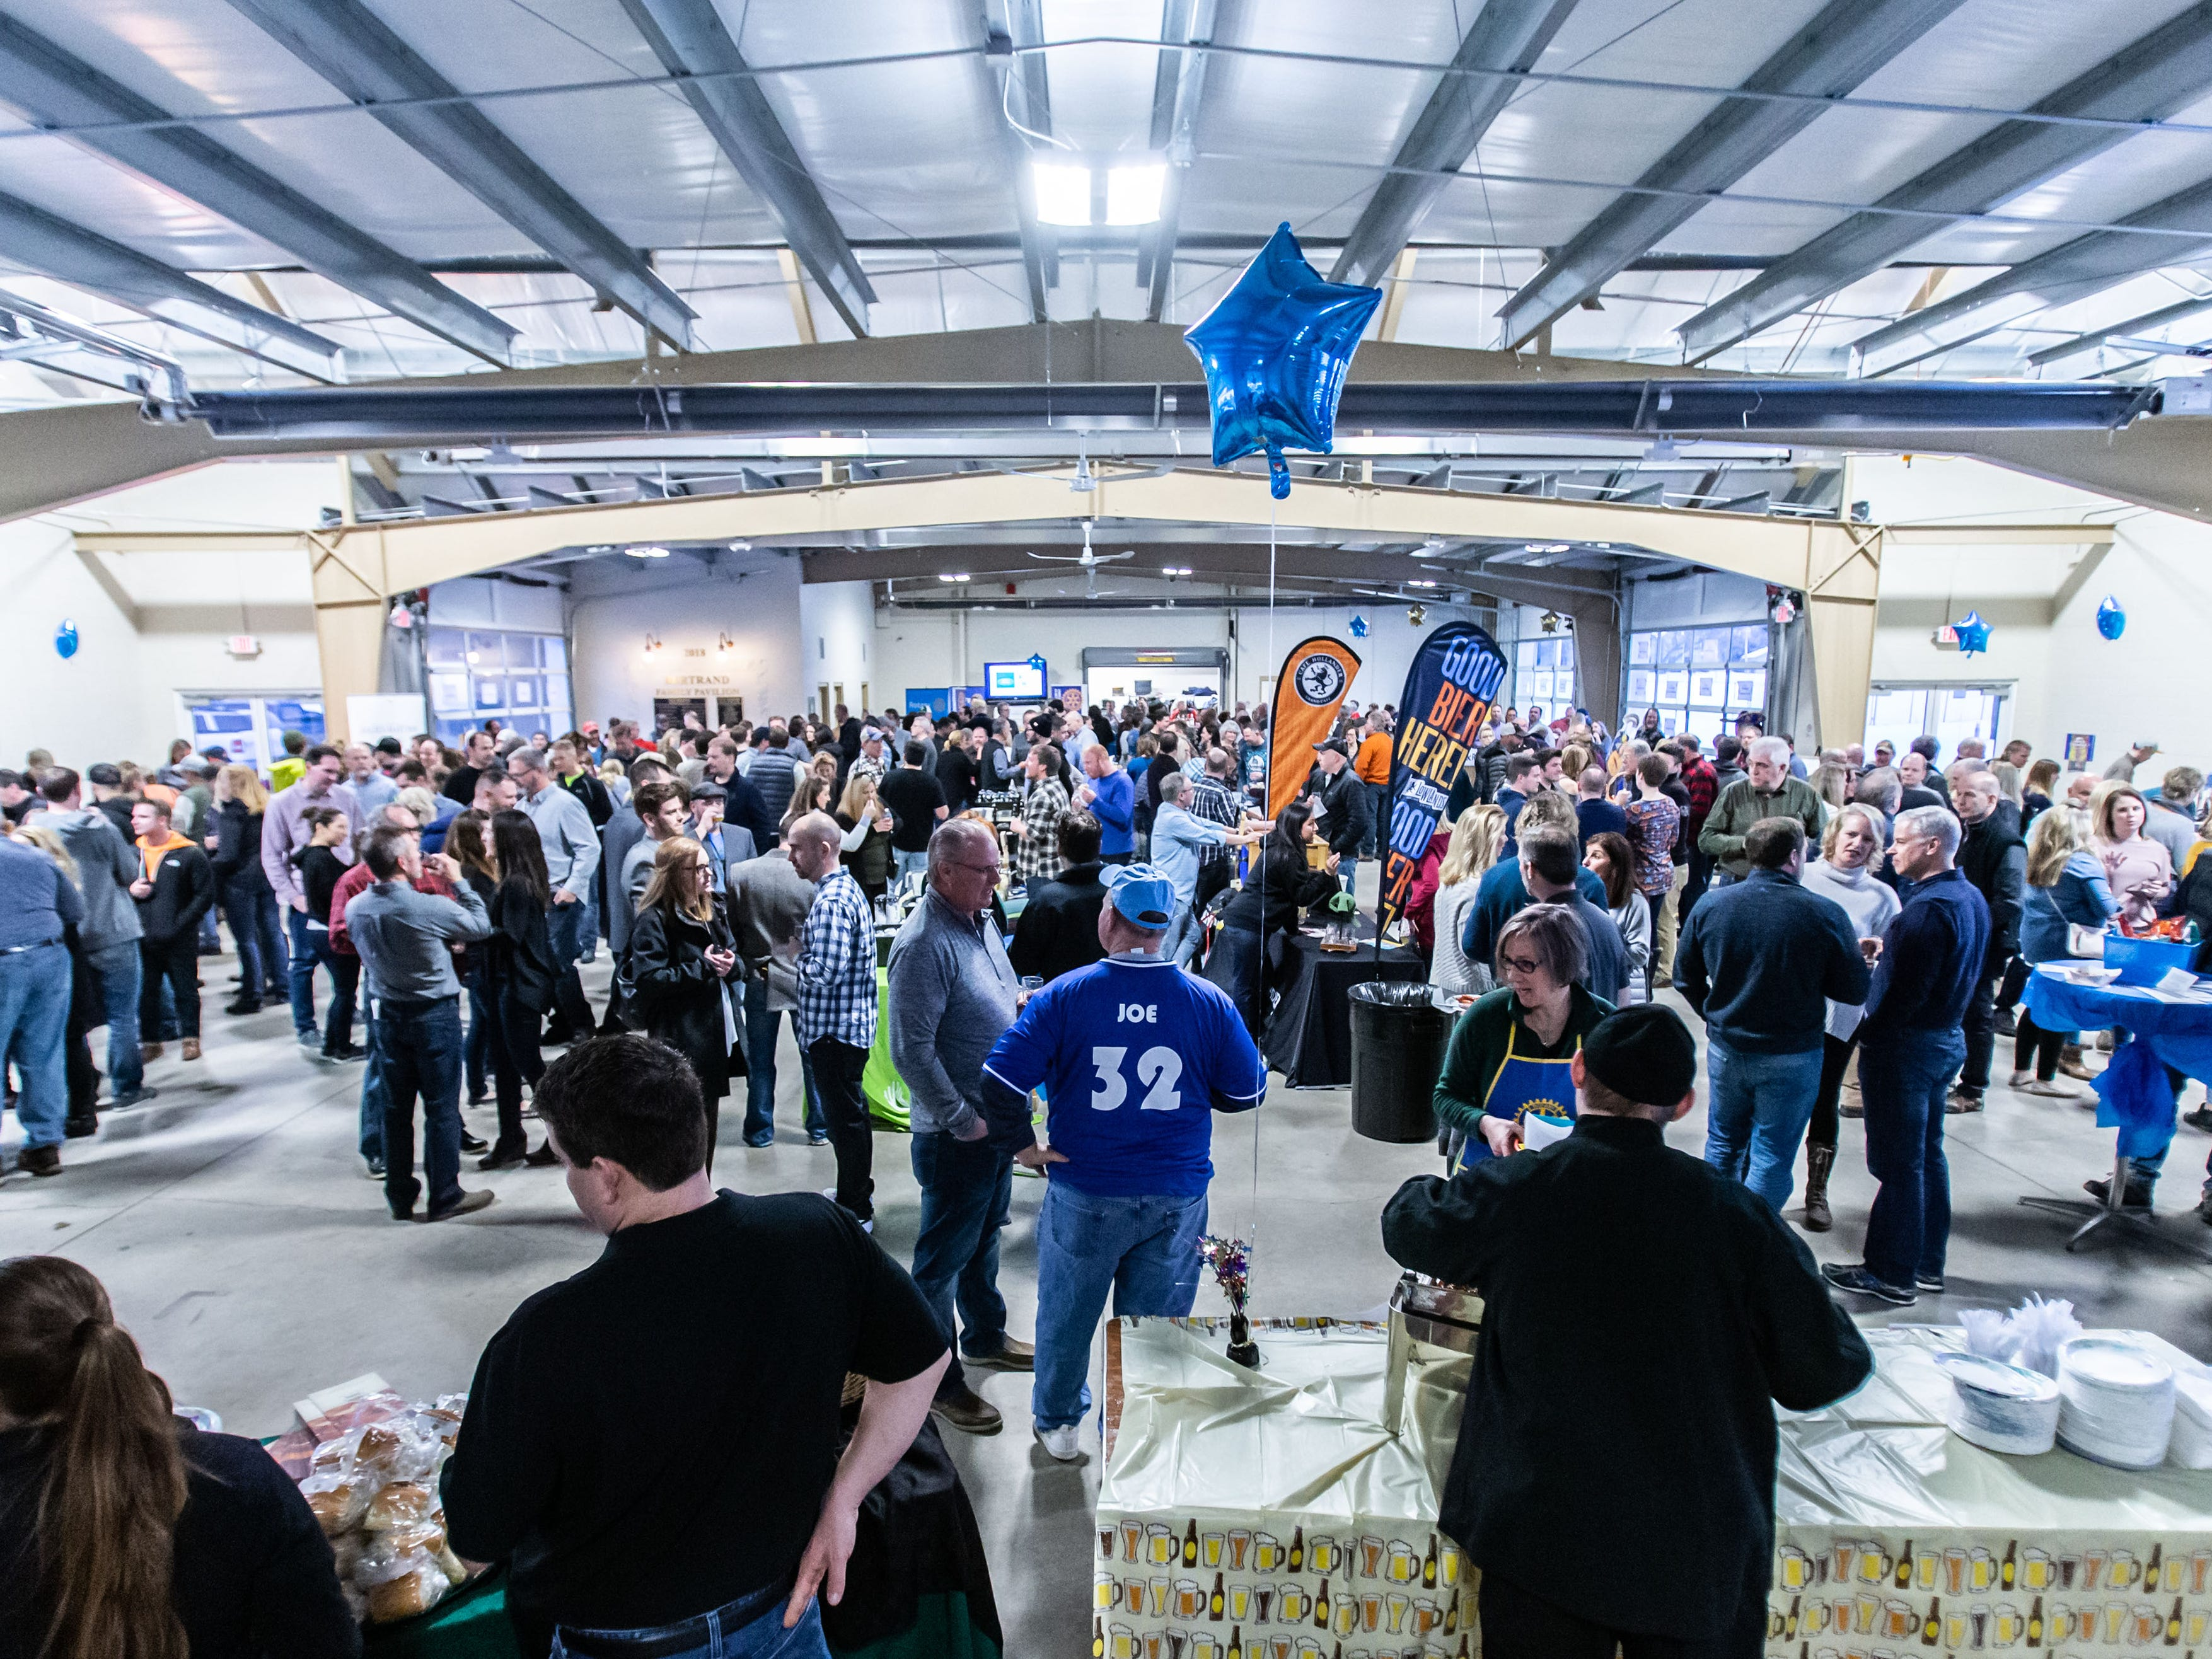 Attendees pack into the Bertrand Family Pavilion at Okauchee Lions Park for the Oconomowoc Rotary Club's 13th annual Oconomowoc Wine & Brewfest on Saturday, March 2, 2019.